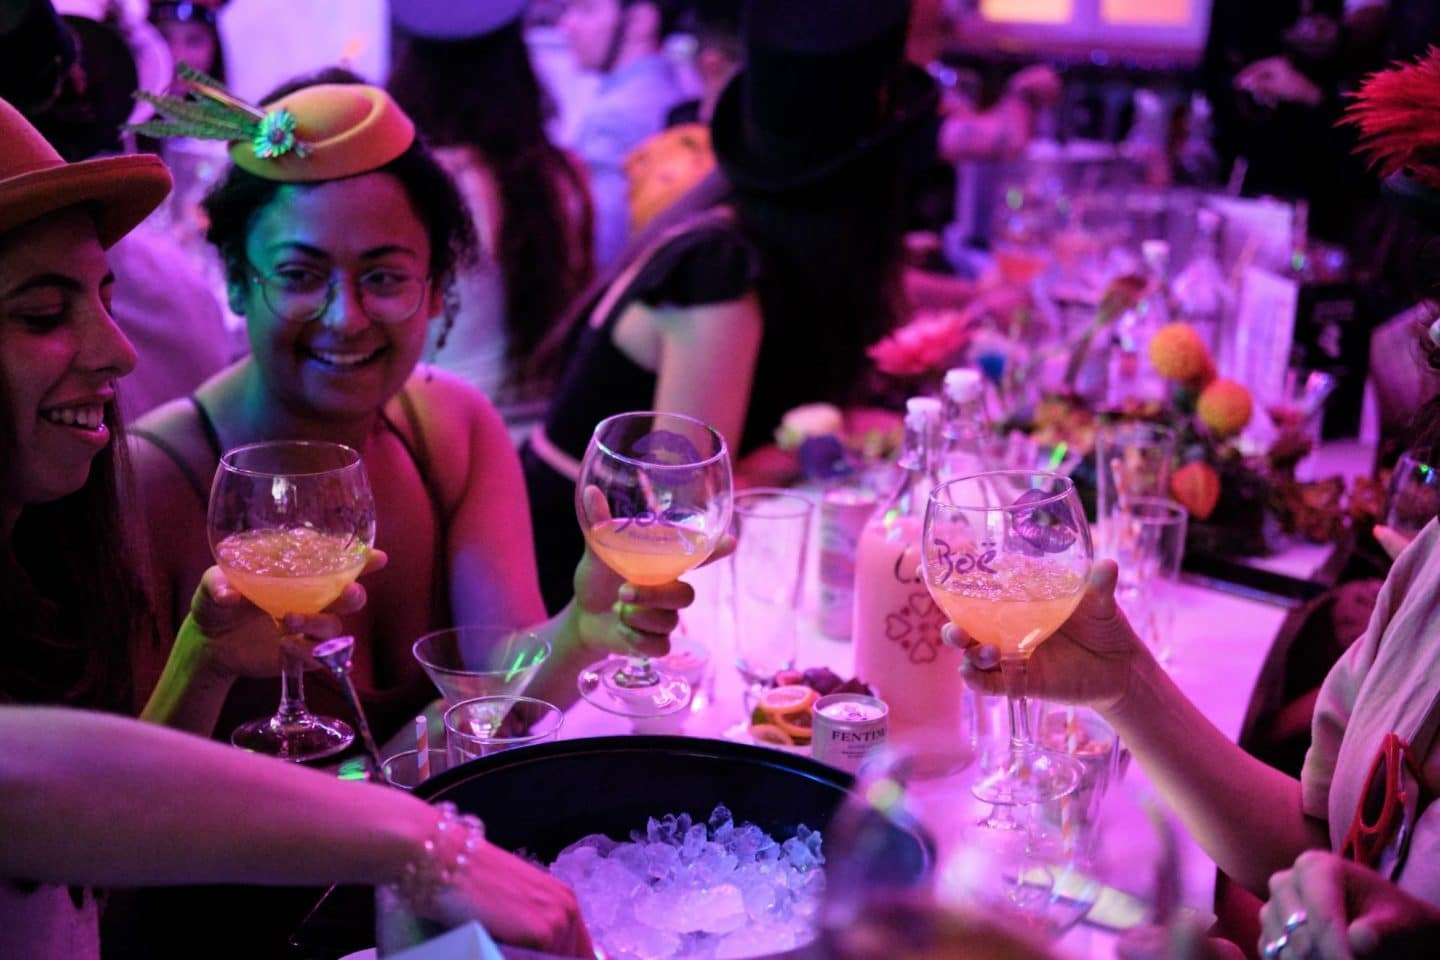 Best Immersive Experiences London: Mad Hatters